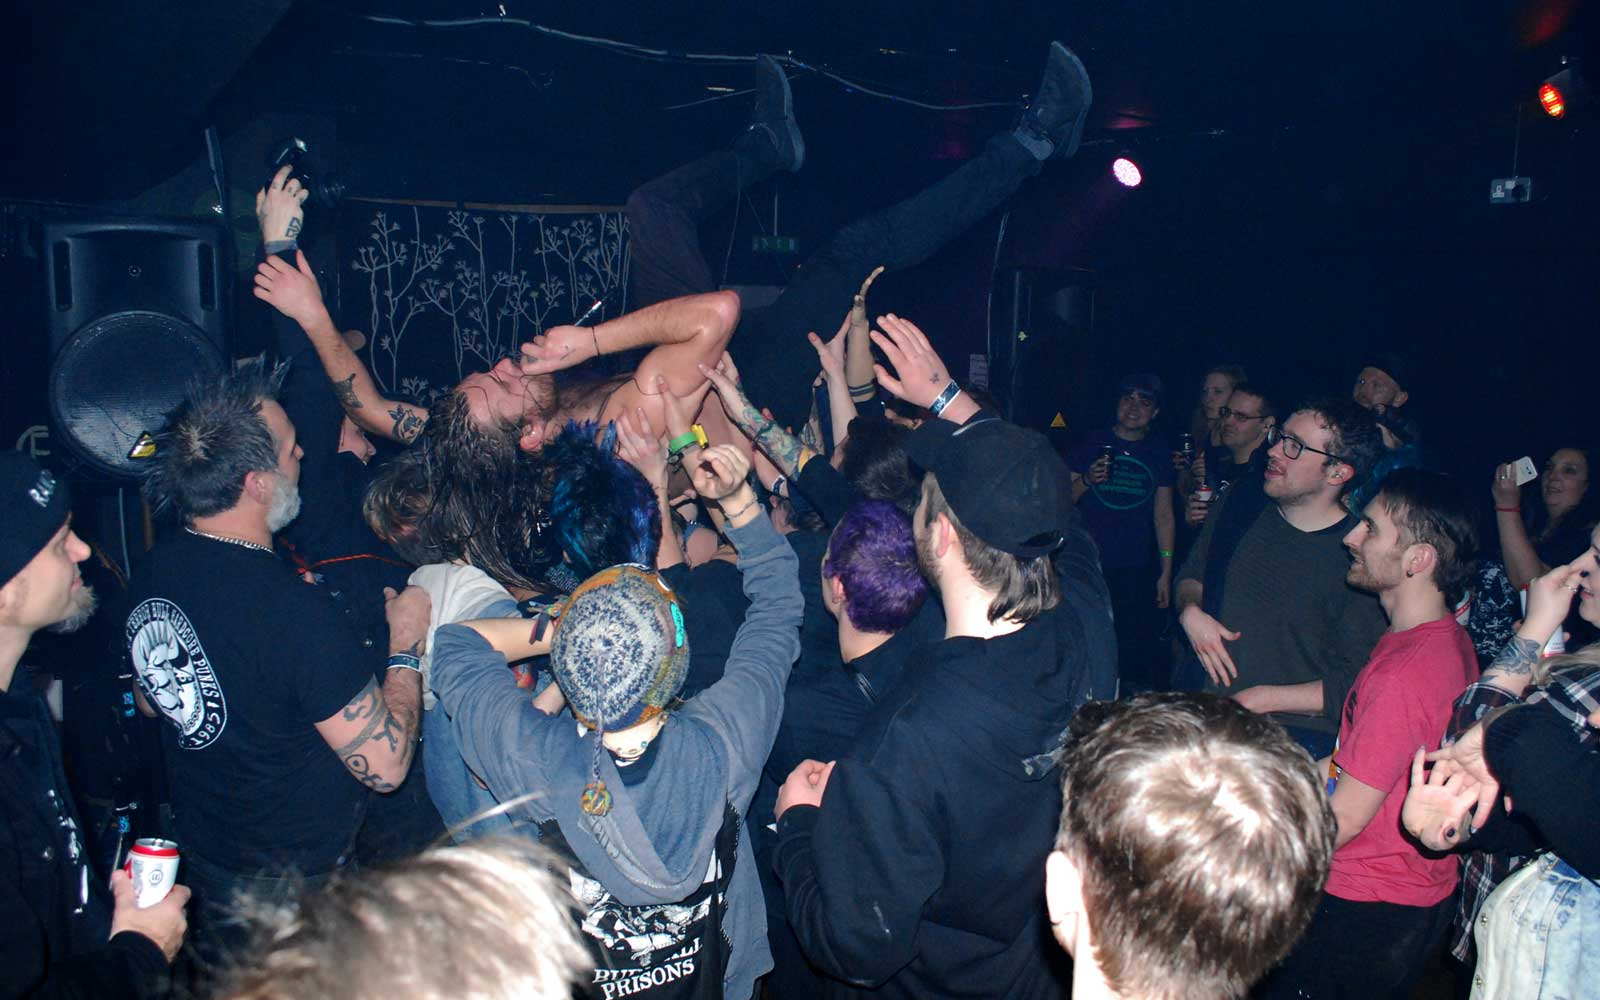 Punk show in Liverpool